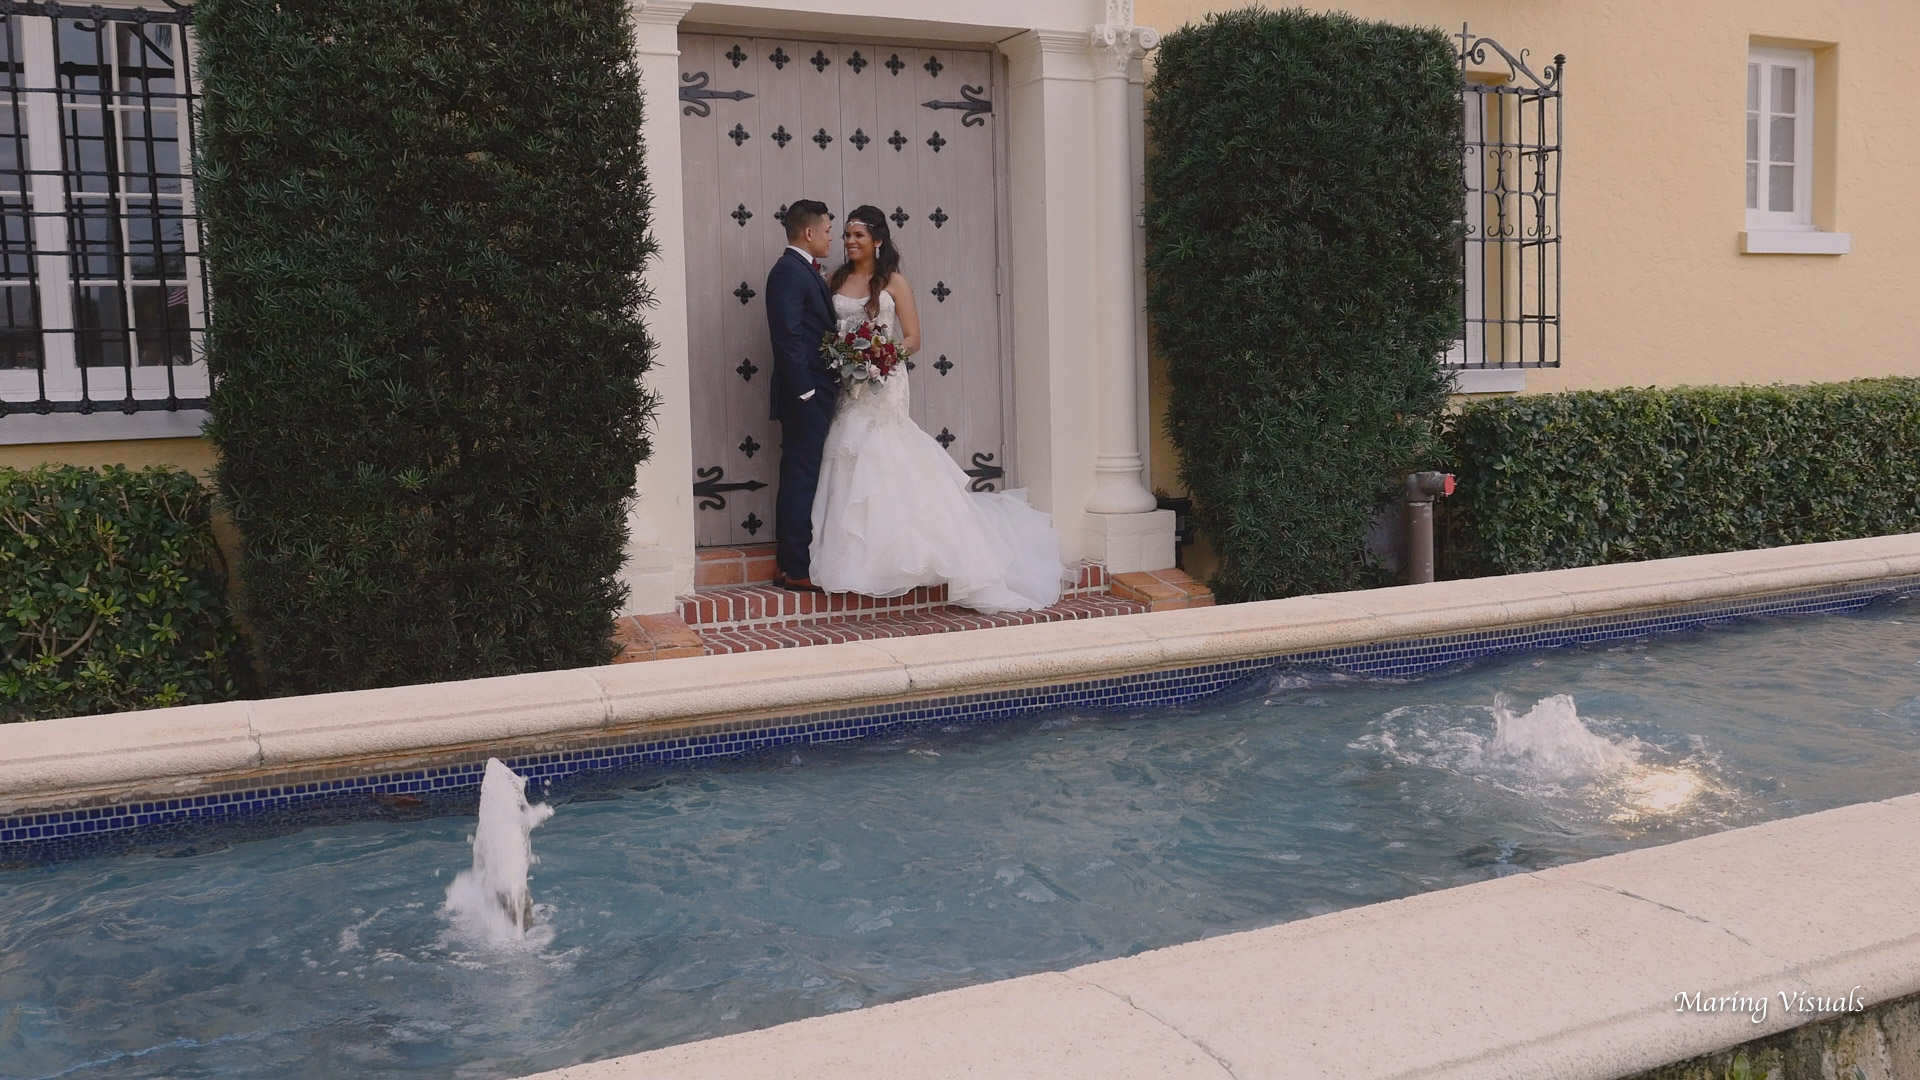 Wedding at The Addison Boca Raton 36.jpg